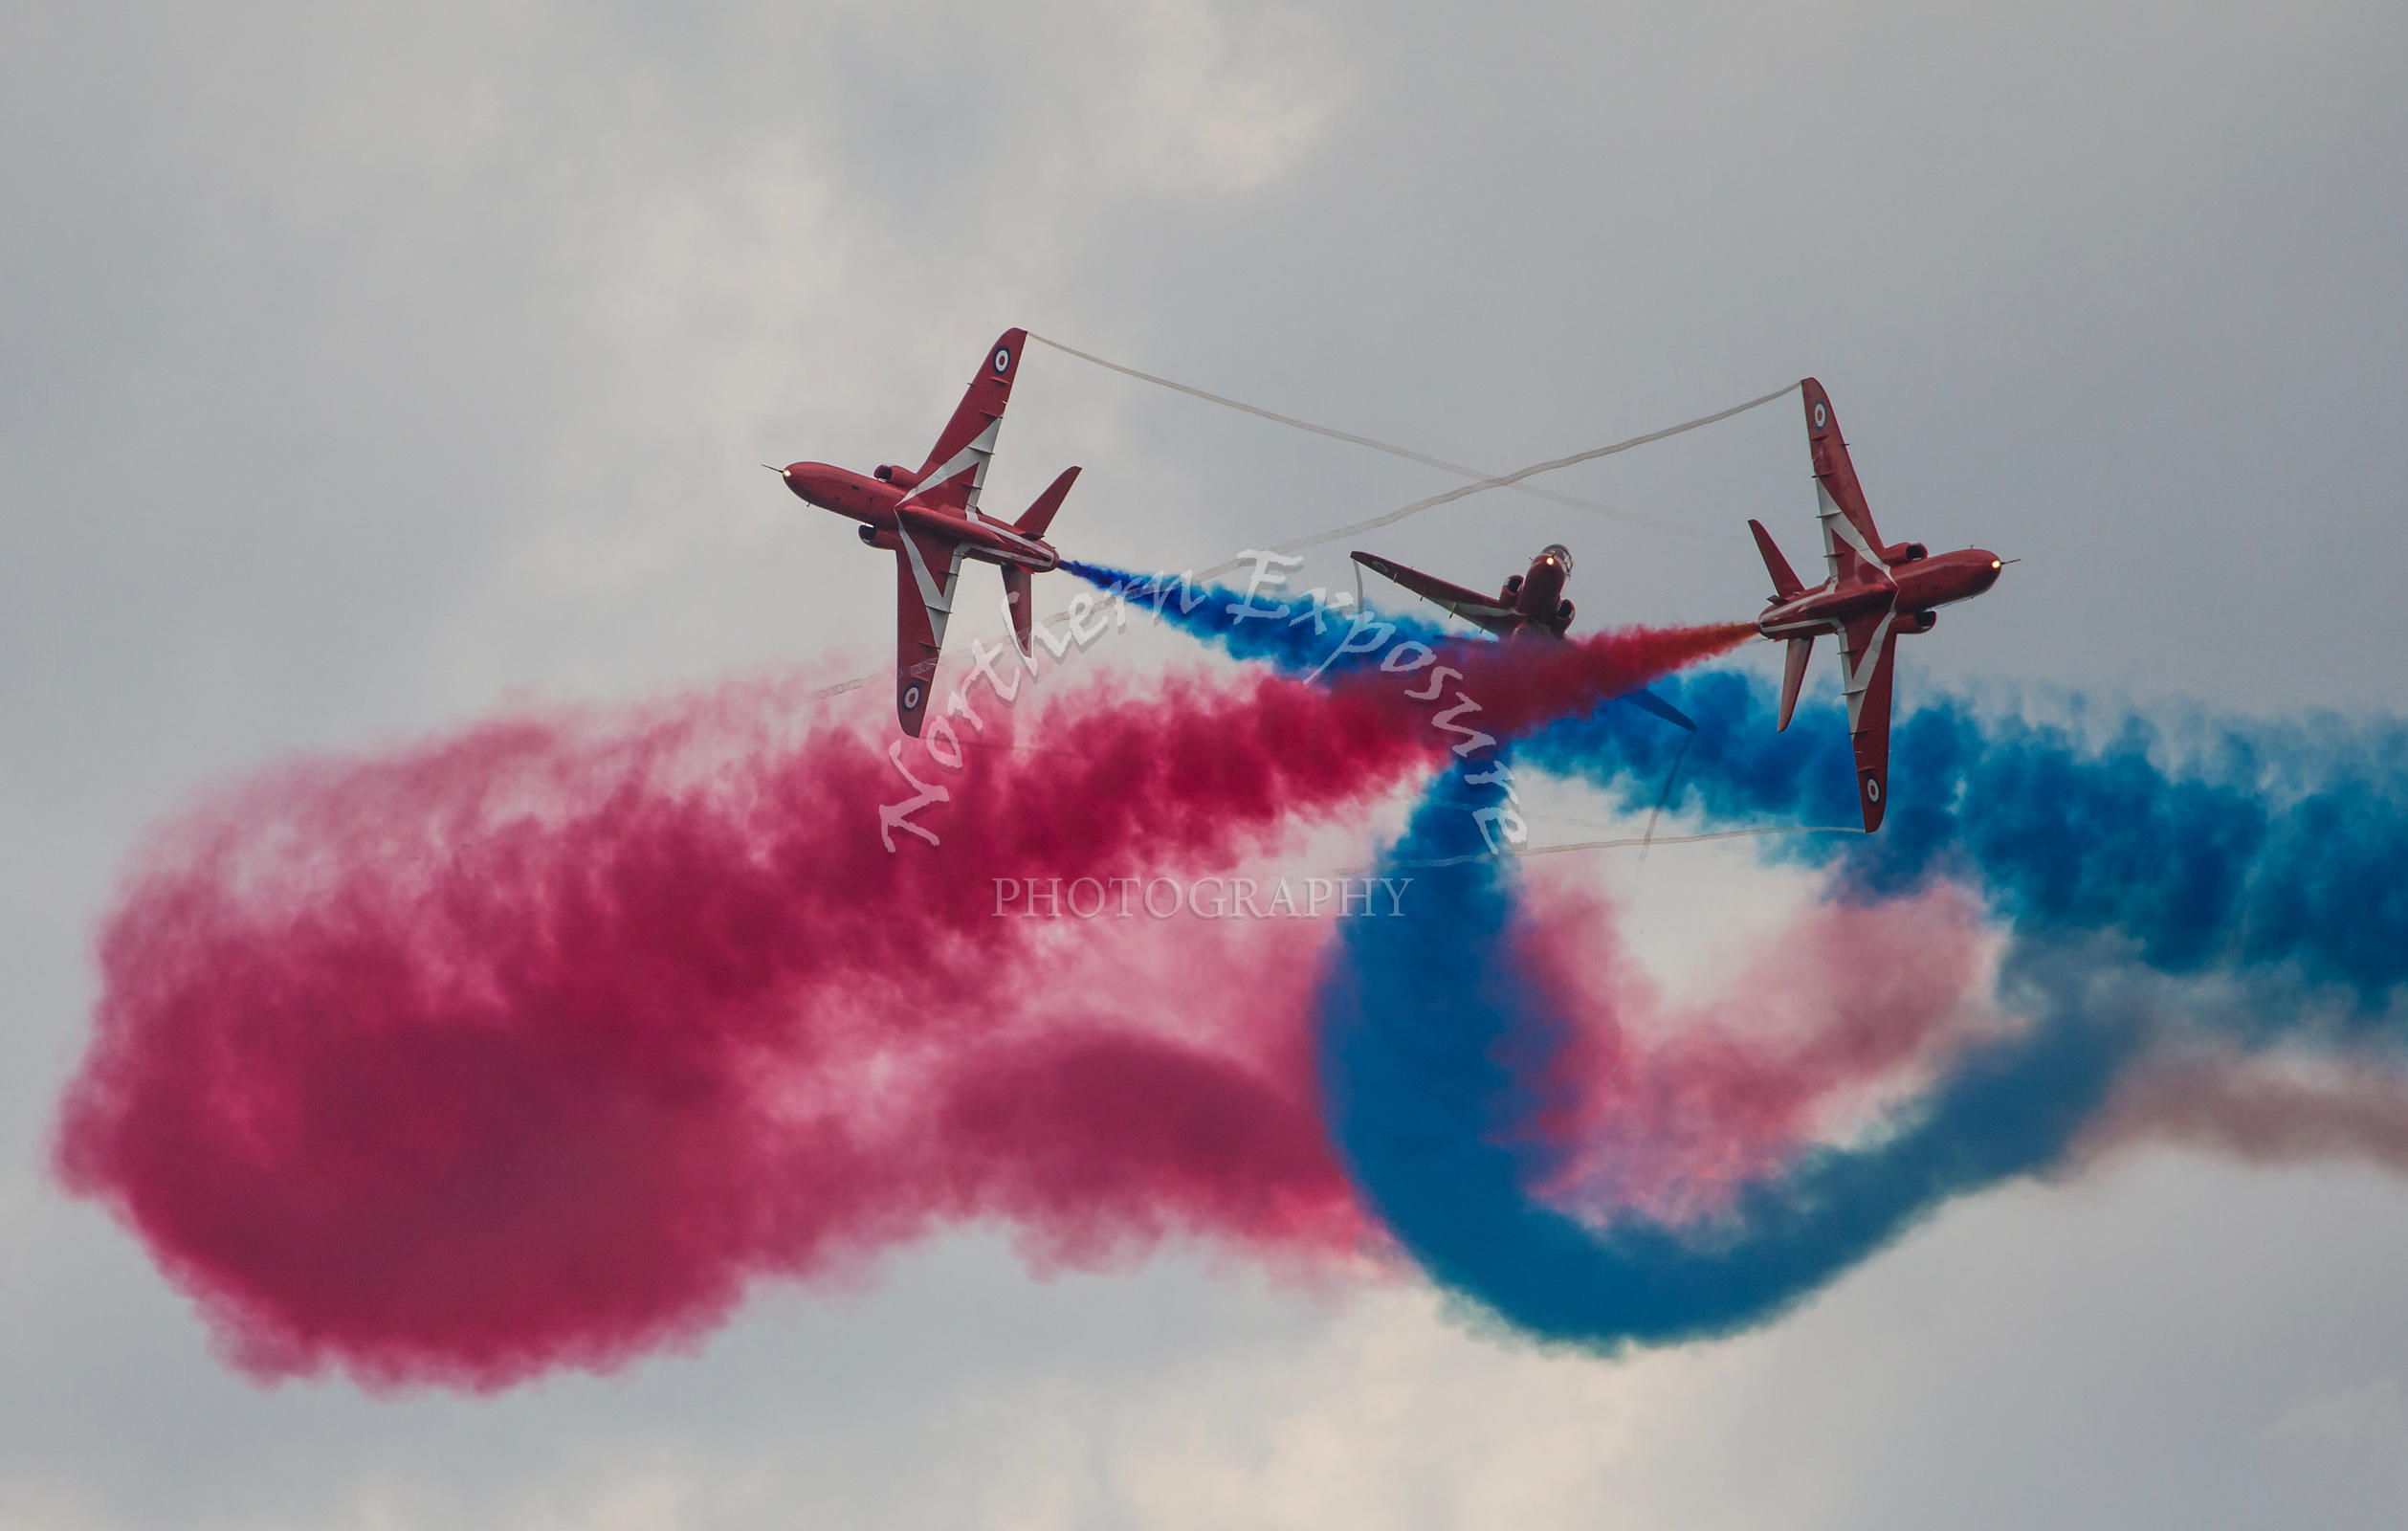 The Red Arrows RAF display team during a formation pass showing smoke while performing at the Battle of Britain 75th Anniversary airshow at Biggin Hill in Kent, England